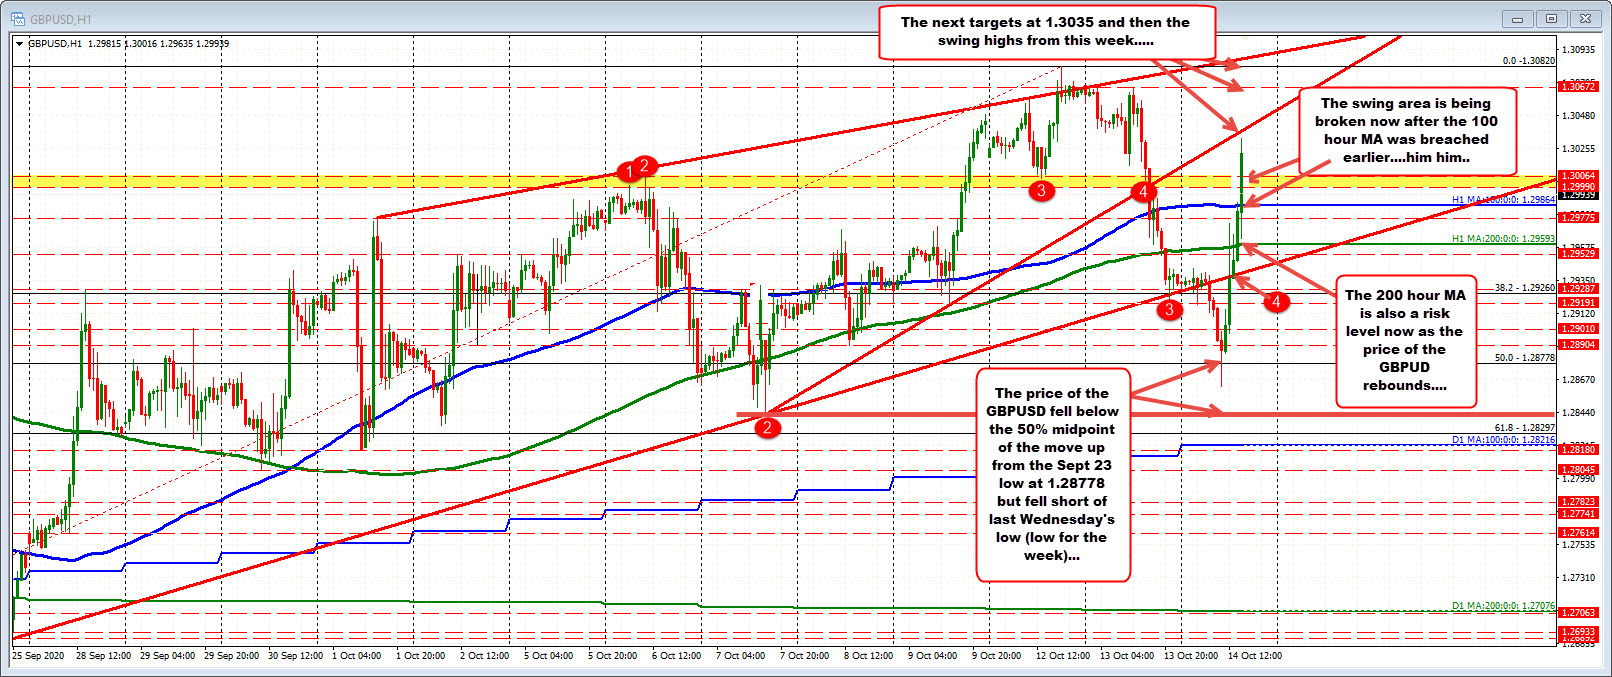 Photo of GBPUSD back above 100 hour moving average and resistance near 1.3000 level